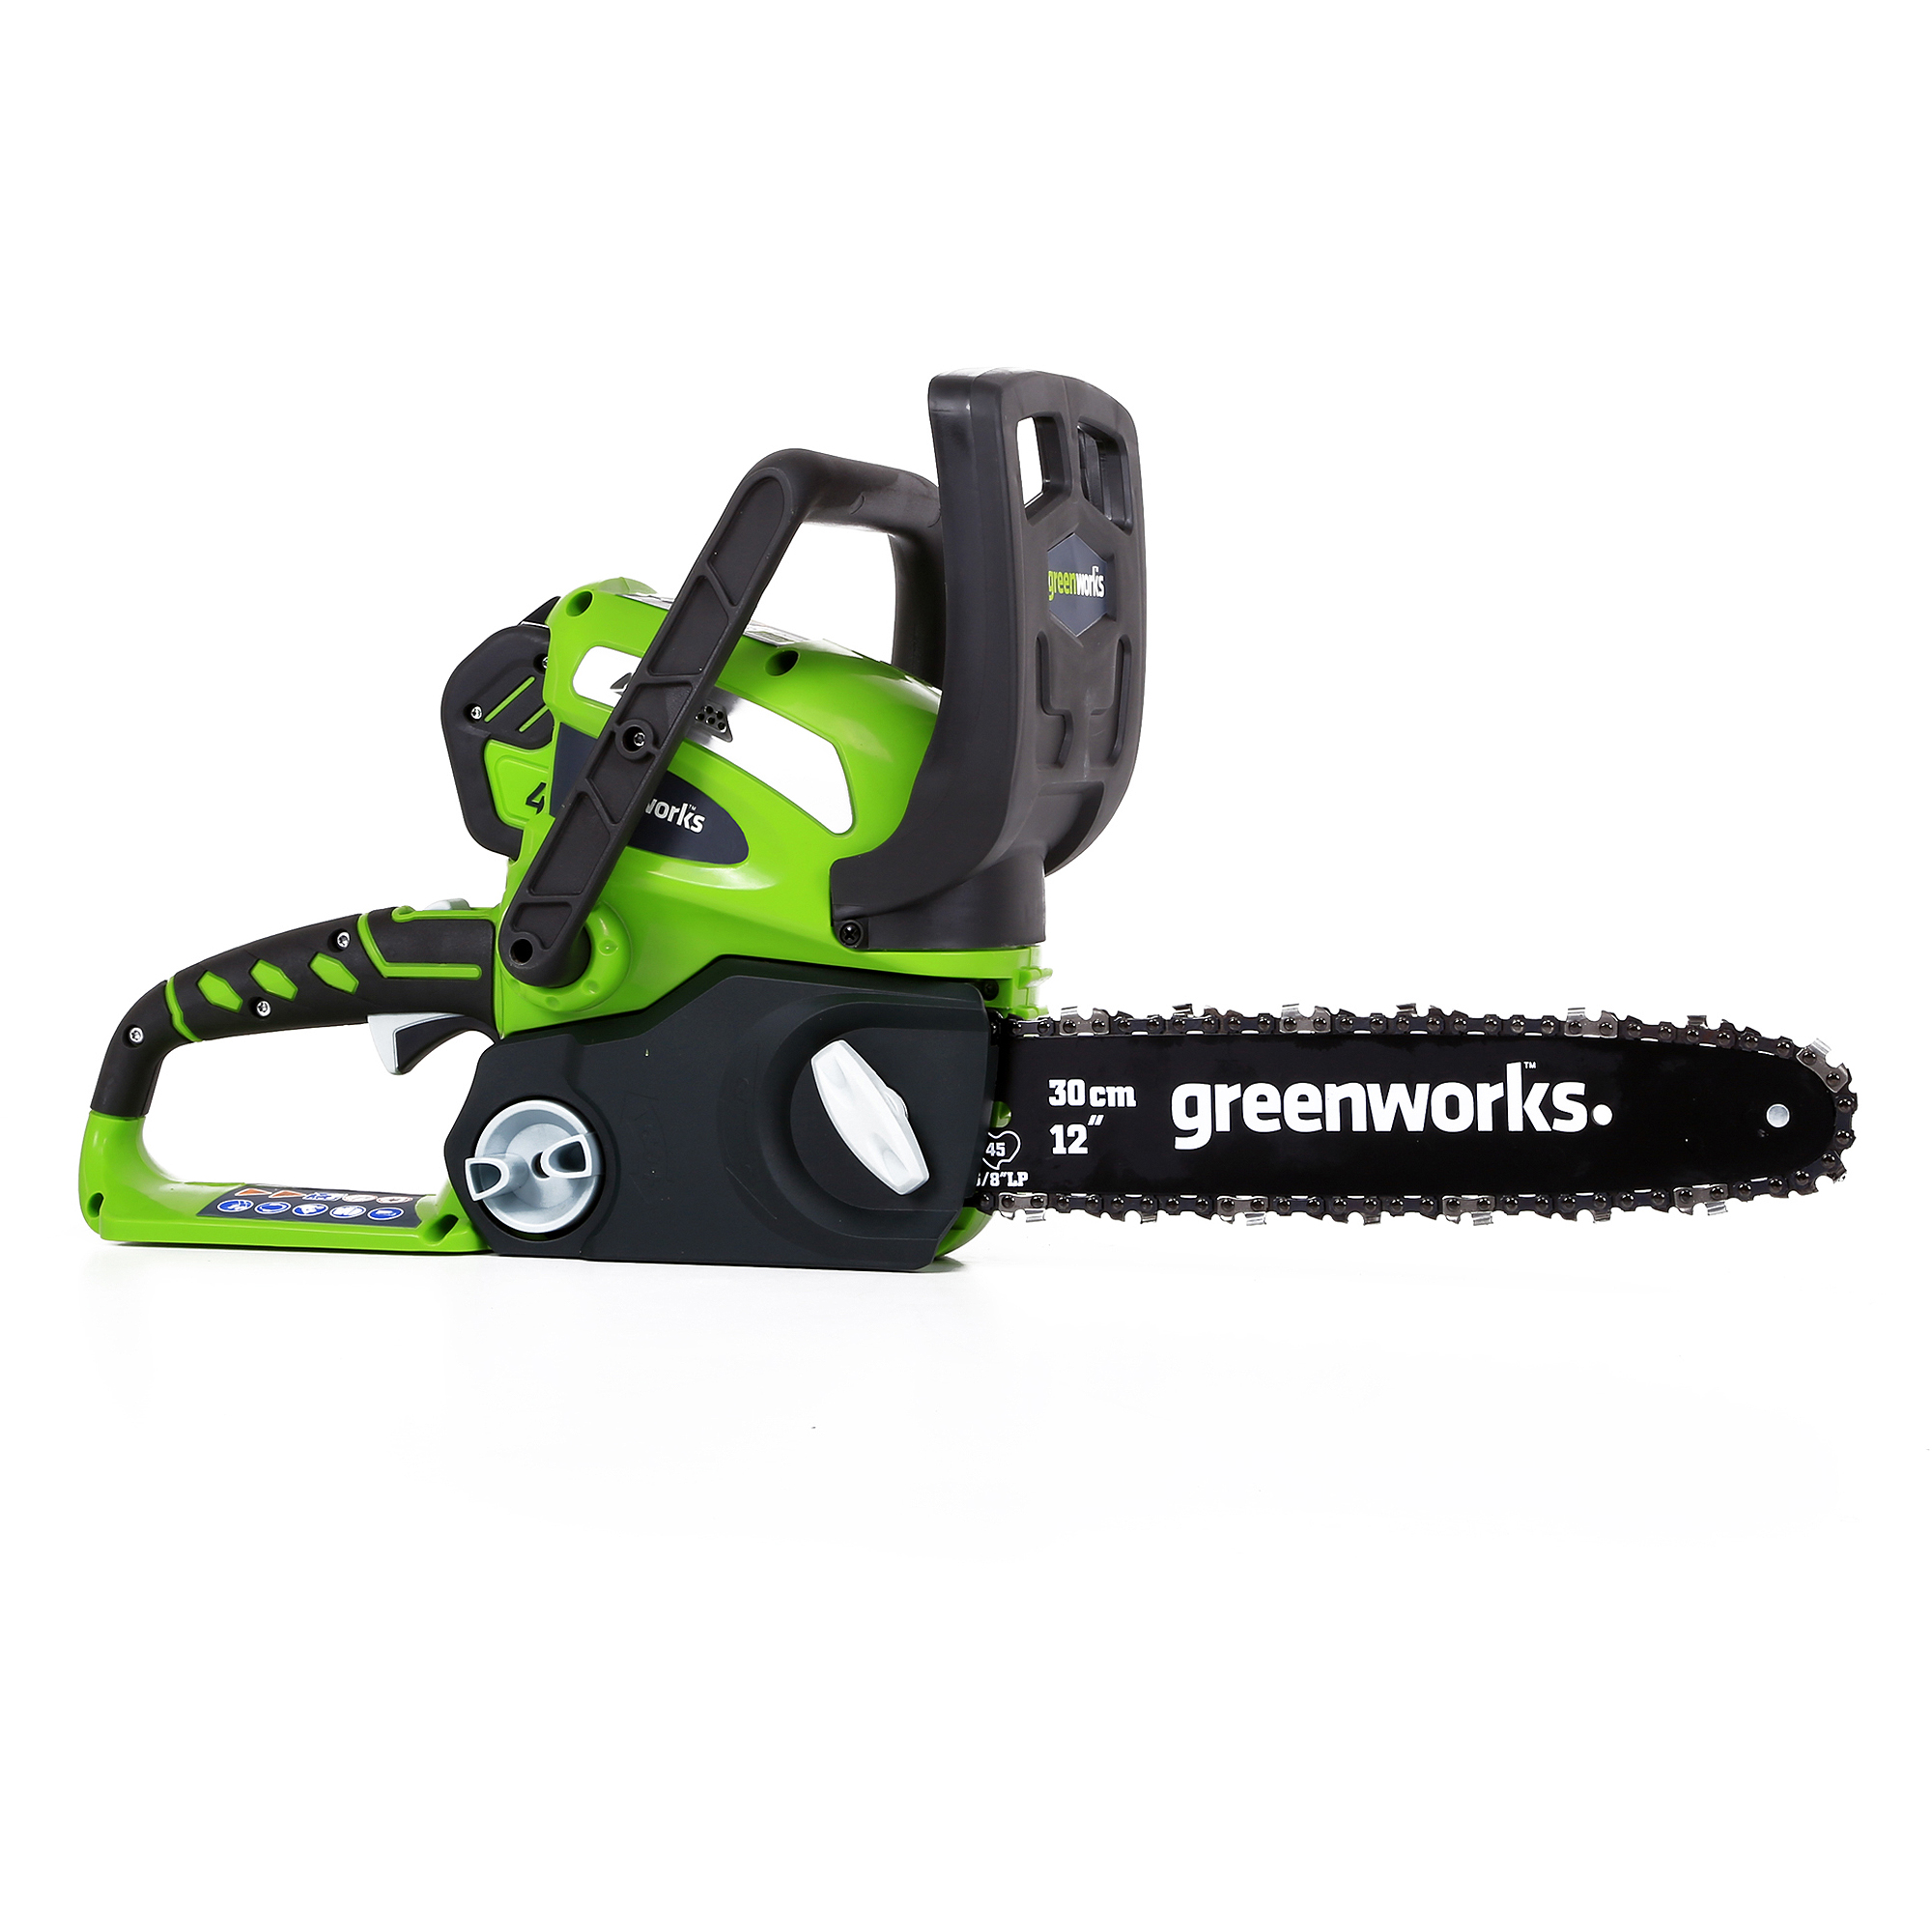 "GreenWorks 20262 40V 12"" Cordless Chainsaw, Includes 2Ah Battery and Charger"